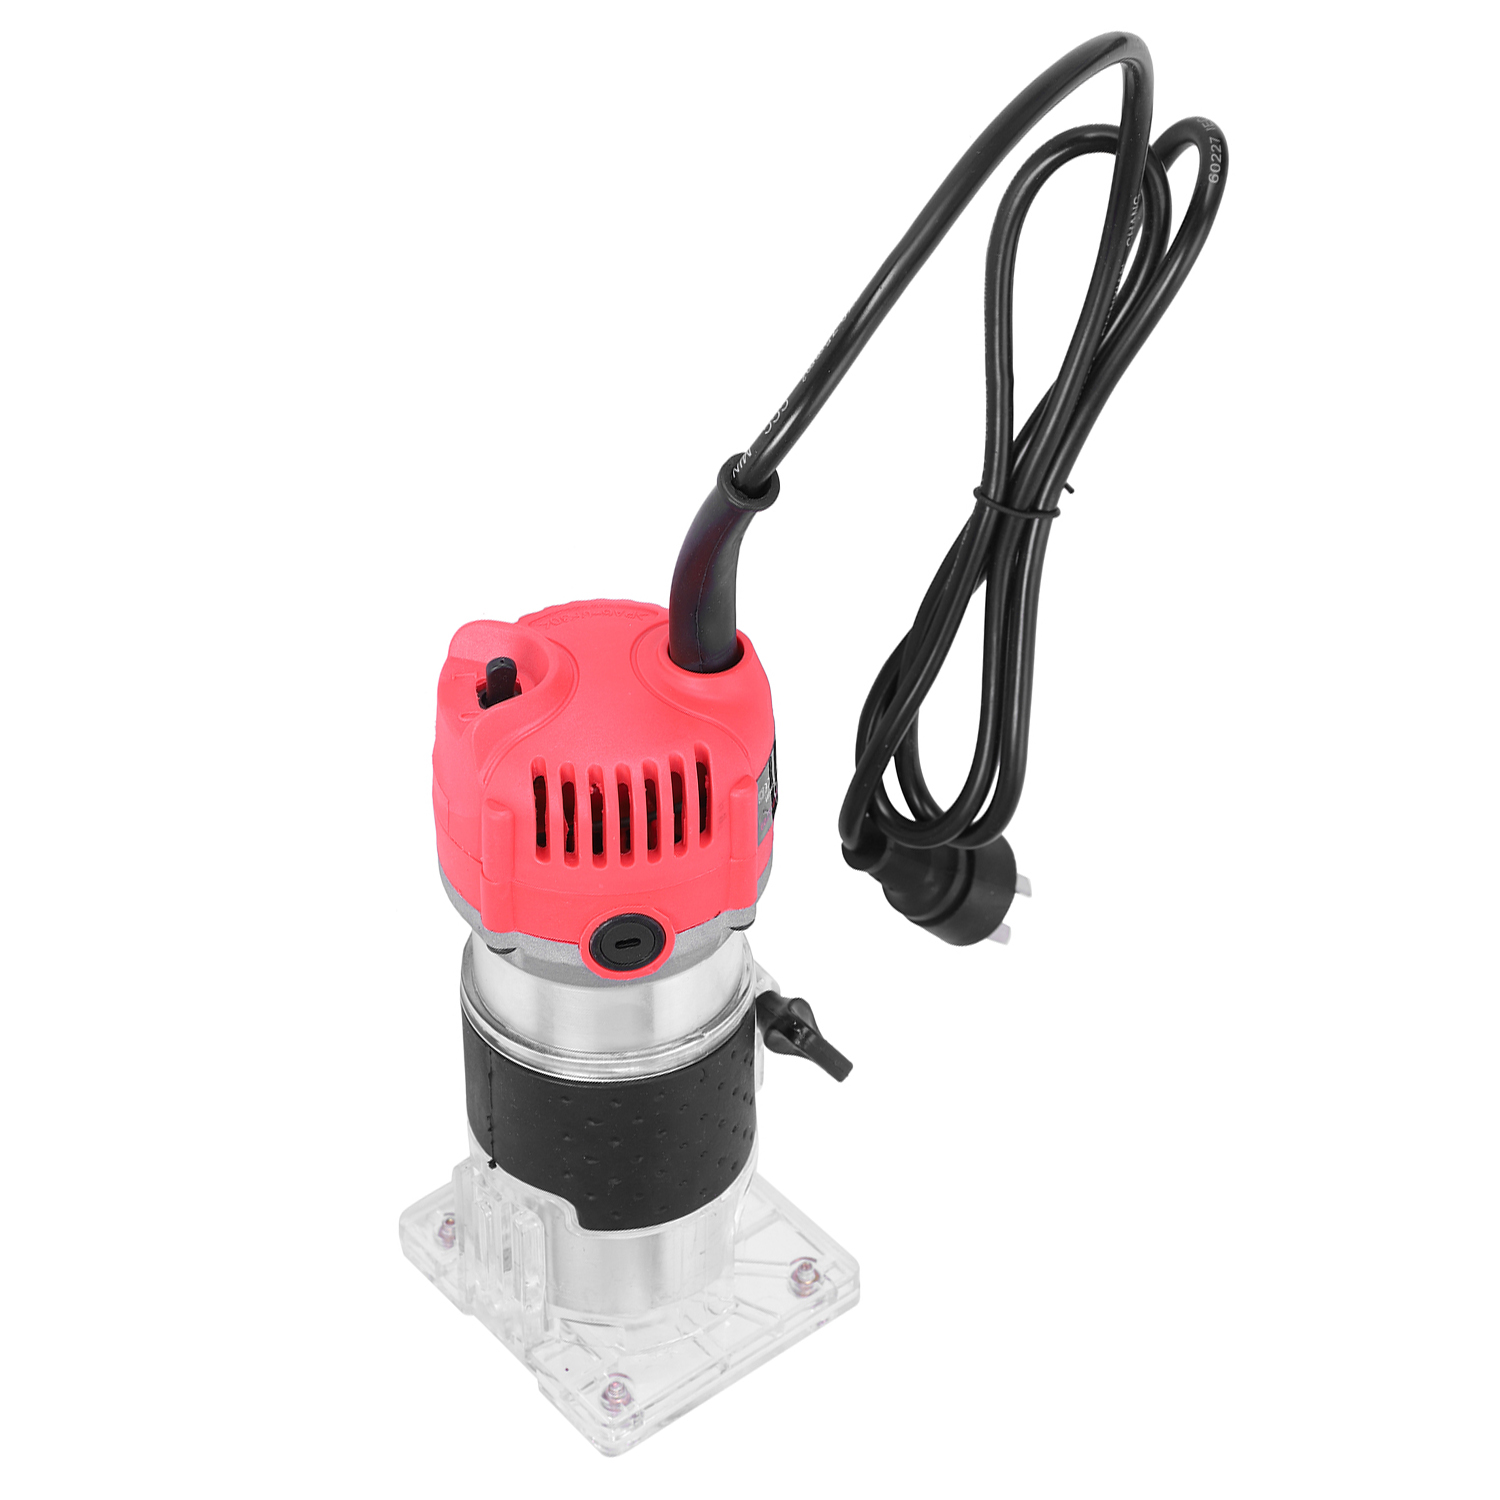 620W 110V Wood Trim Router 6.35mm Collection Diameter Electric Manual Trimmer Woodworking Laminated Palm Router US Plug620W 110V Wood Trim Router 6.35mm Collection Diameter Electric Manual Trimmer Woodworking Laminated Palm Router US Plug